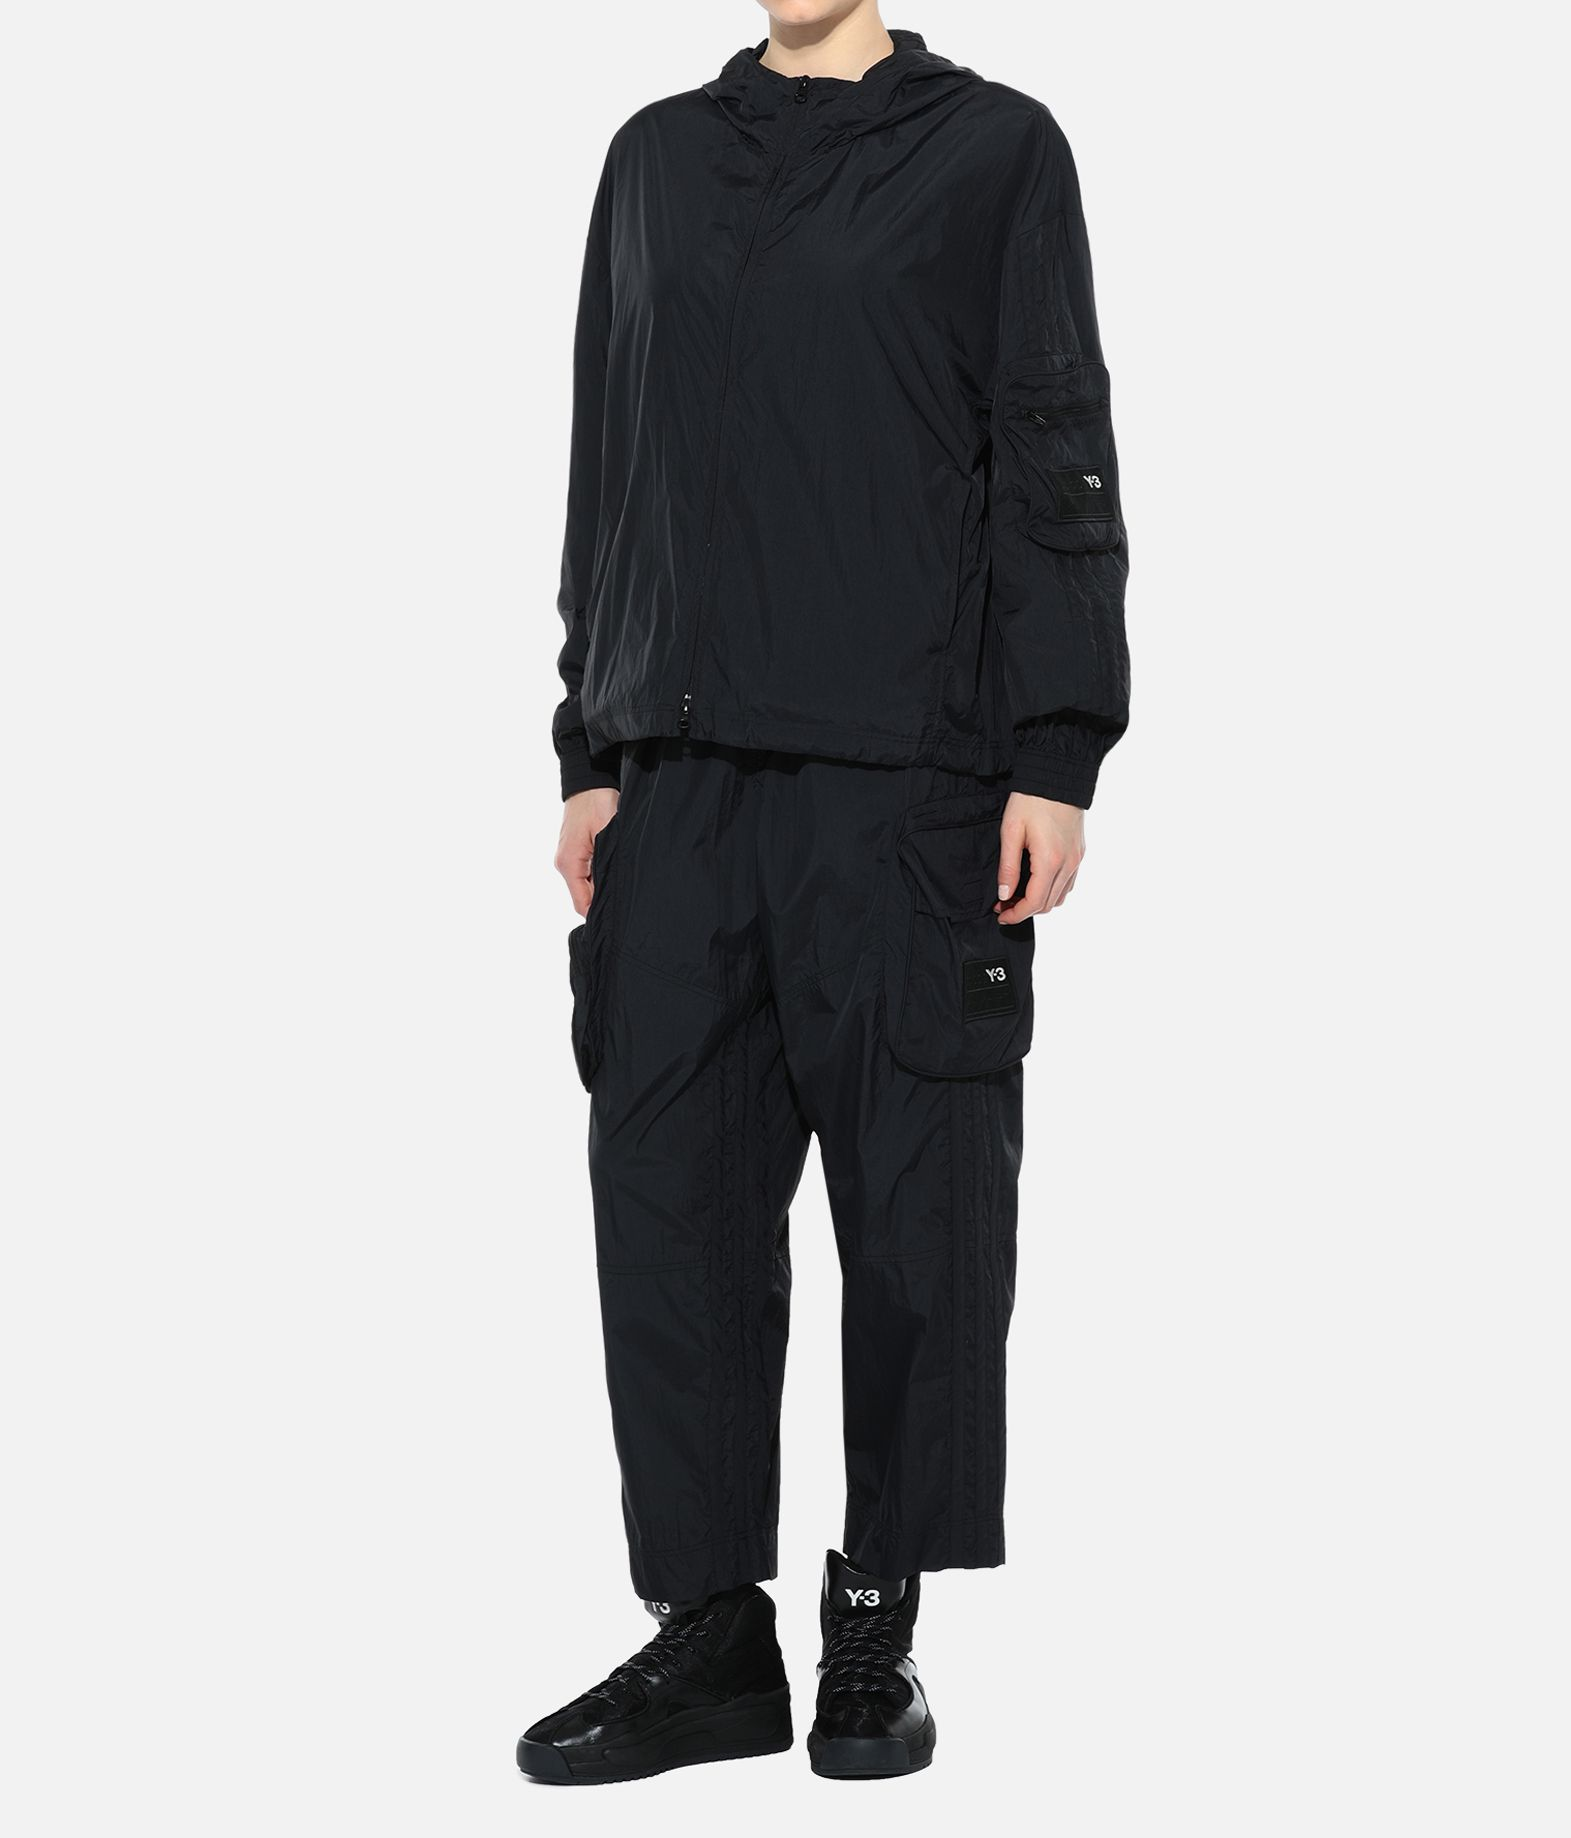 Y-3 Y-3 Shell Track Jacket Hooded Track Top Woman a